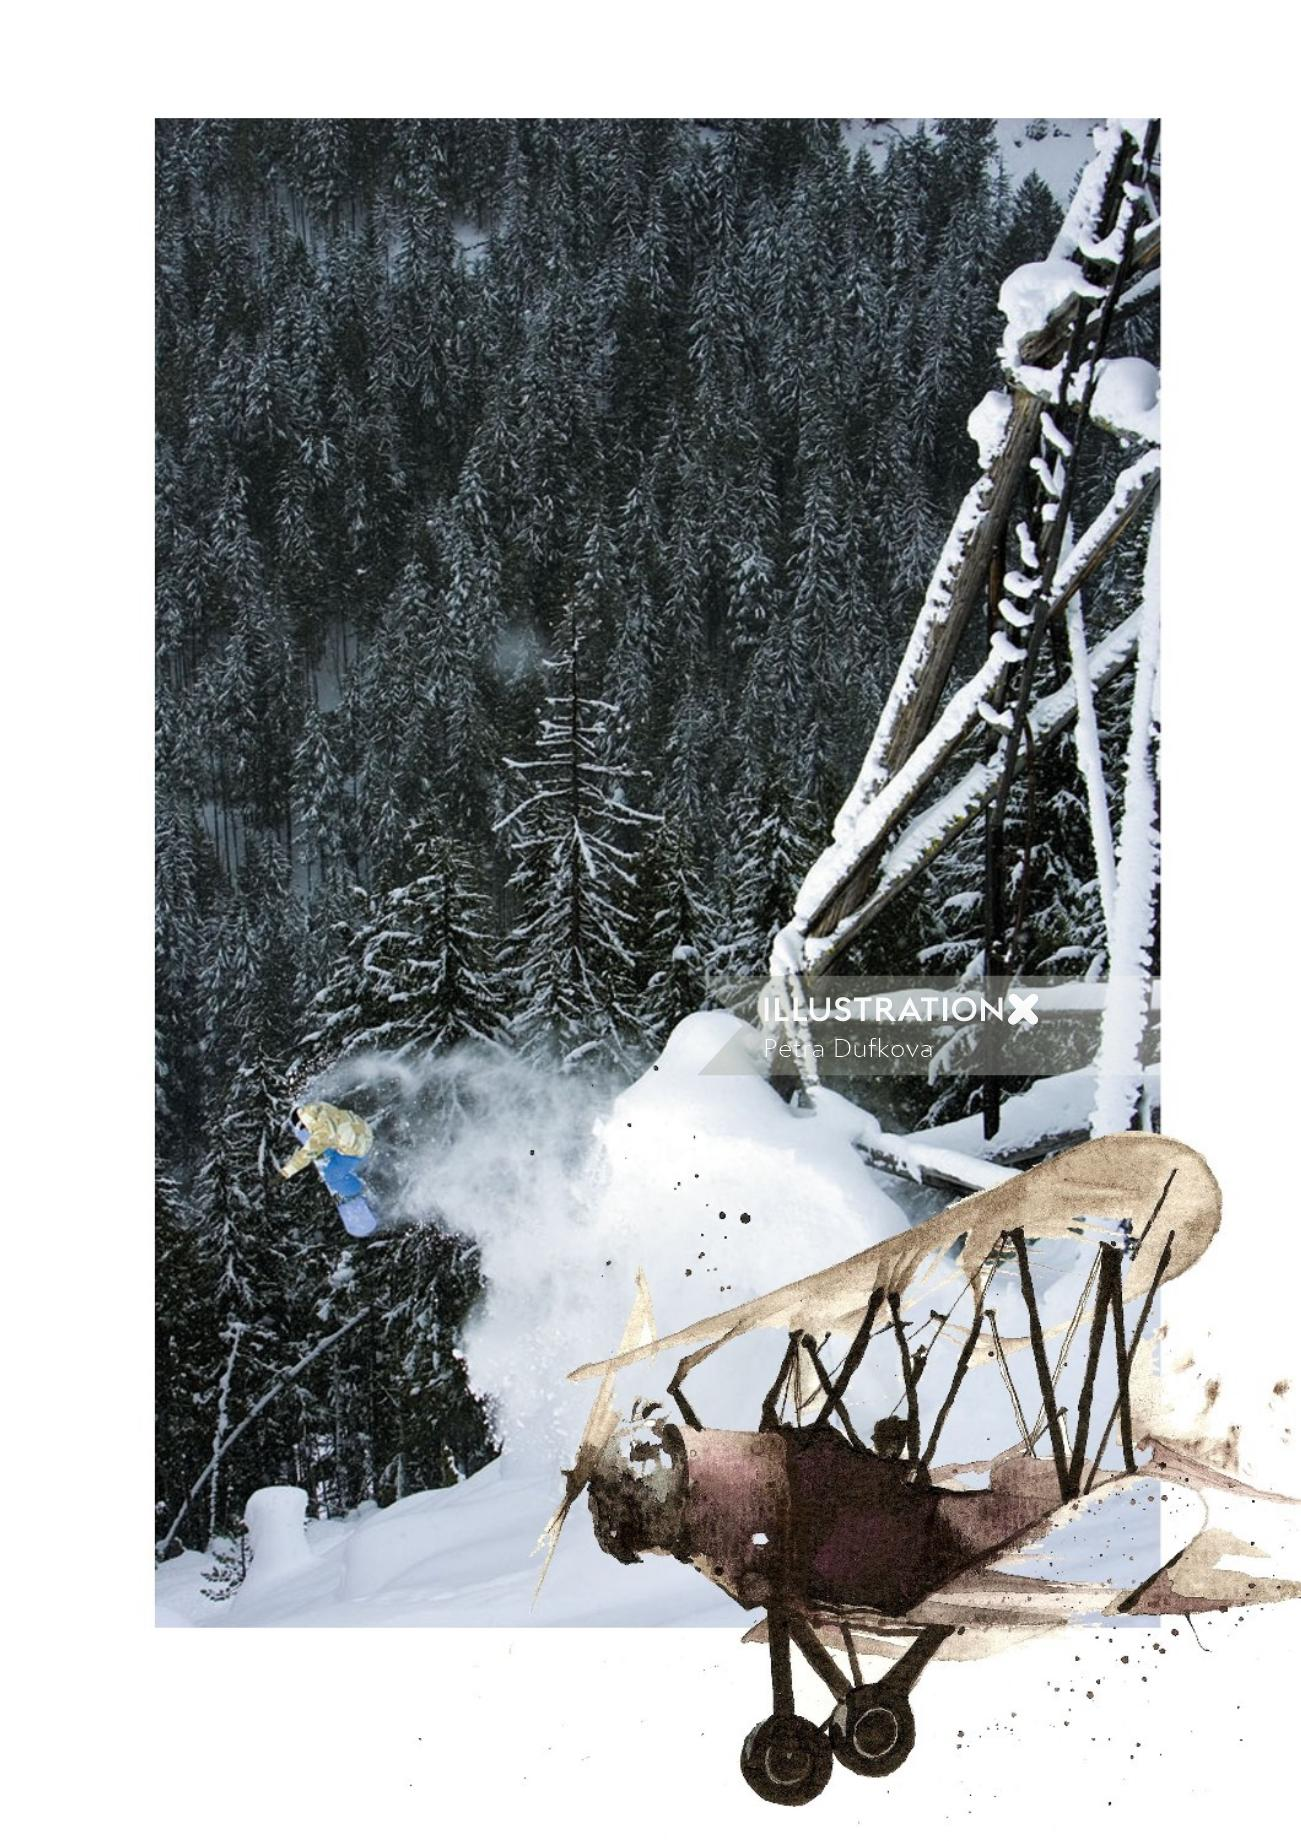 Technical illustration of a plane in snowy mountain